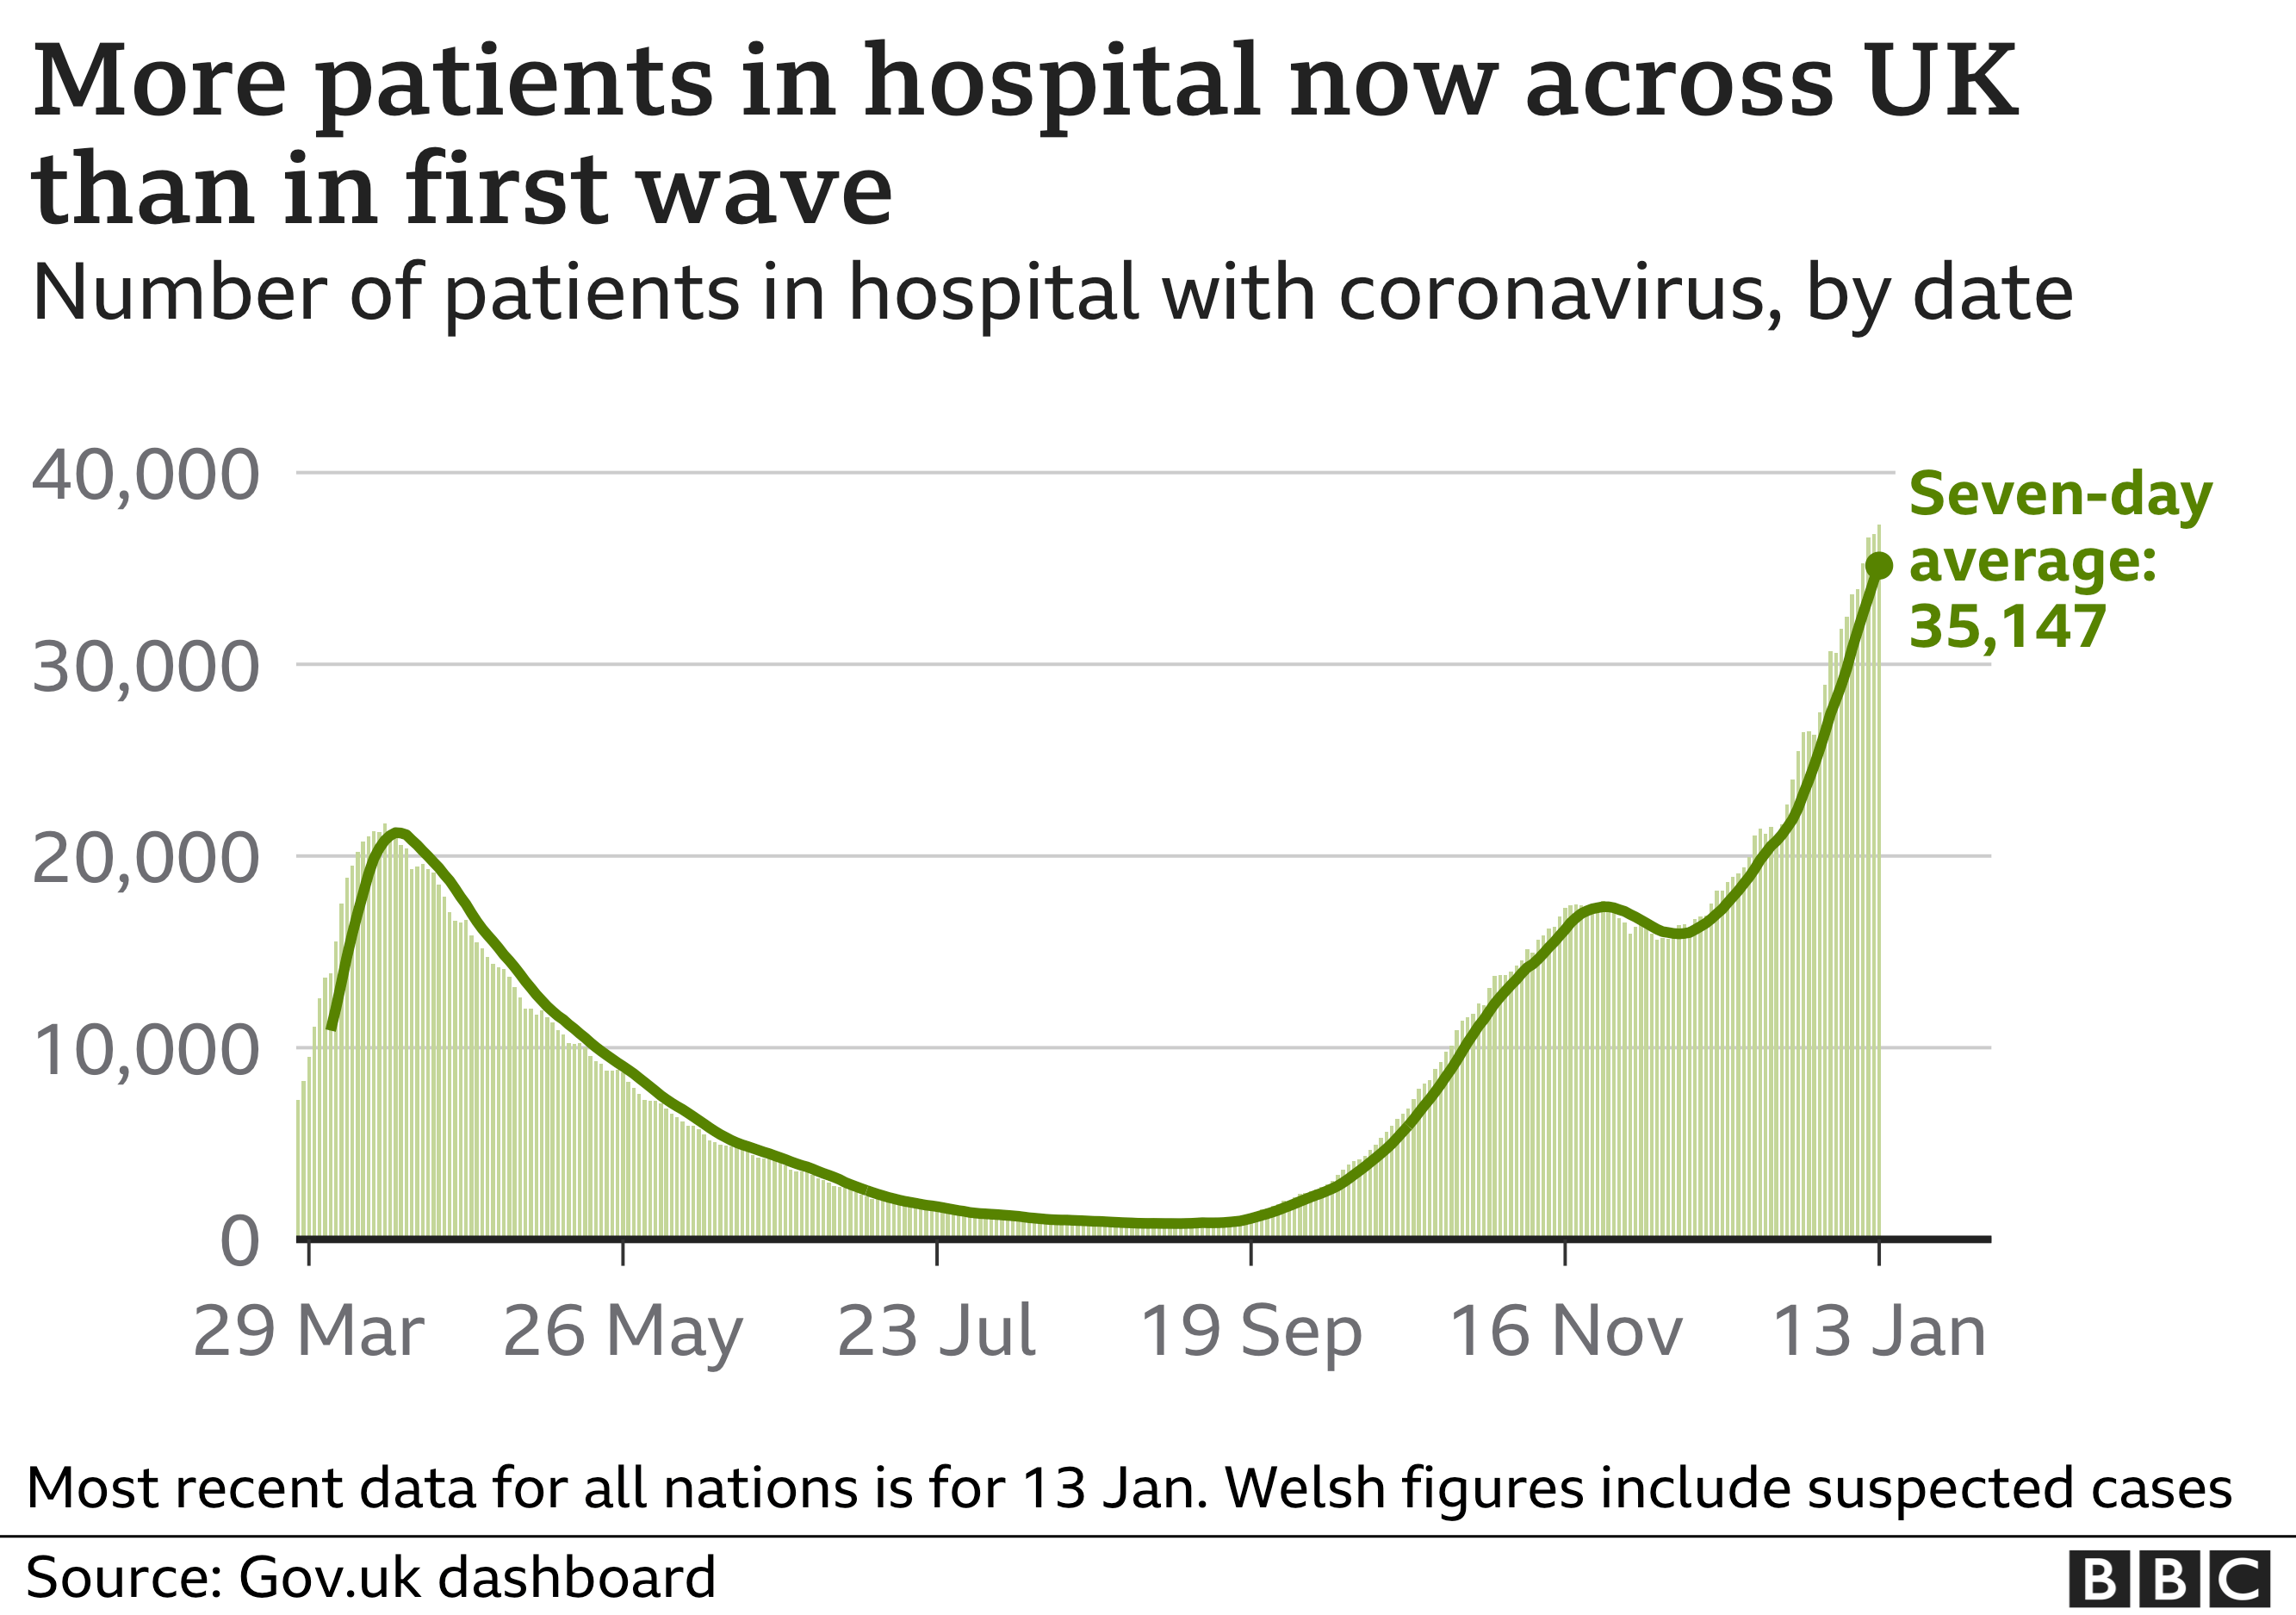 Graph showing hospital admissions in the UK